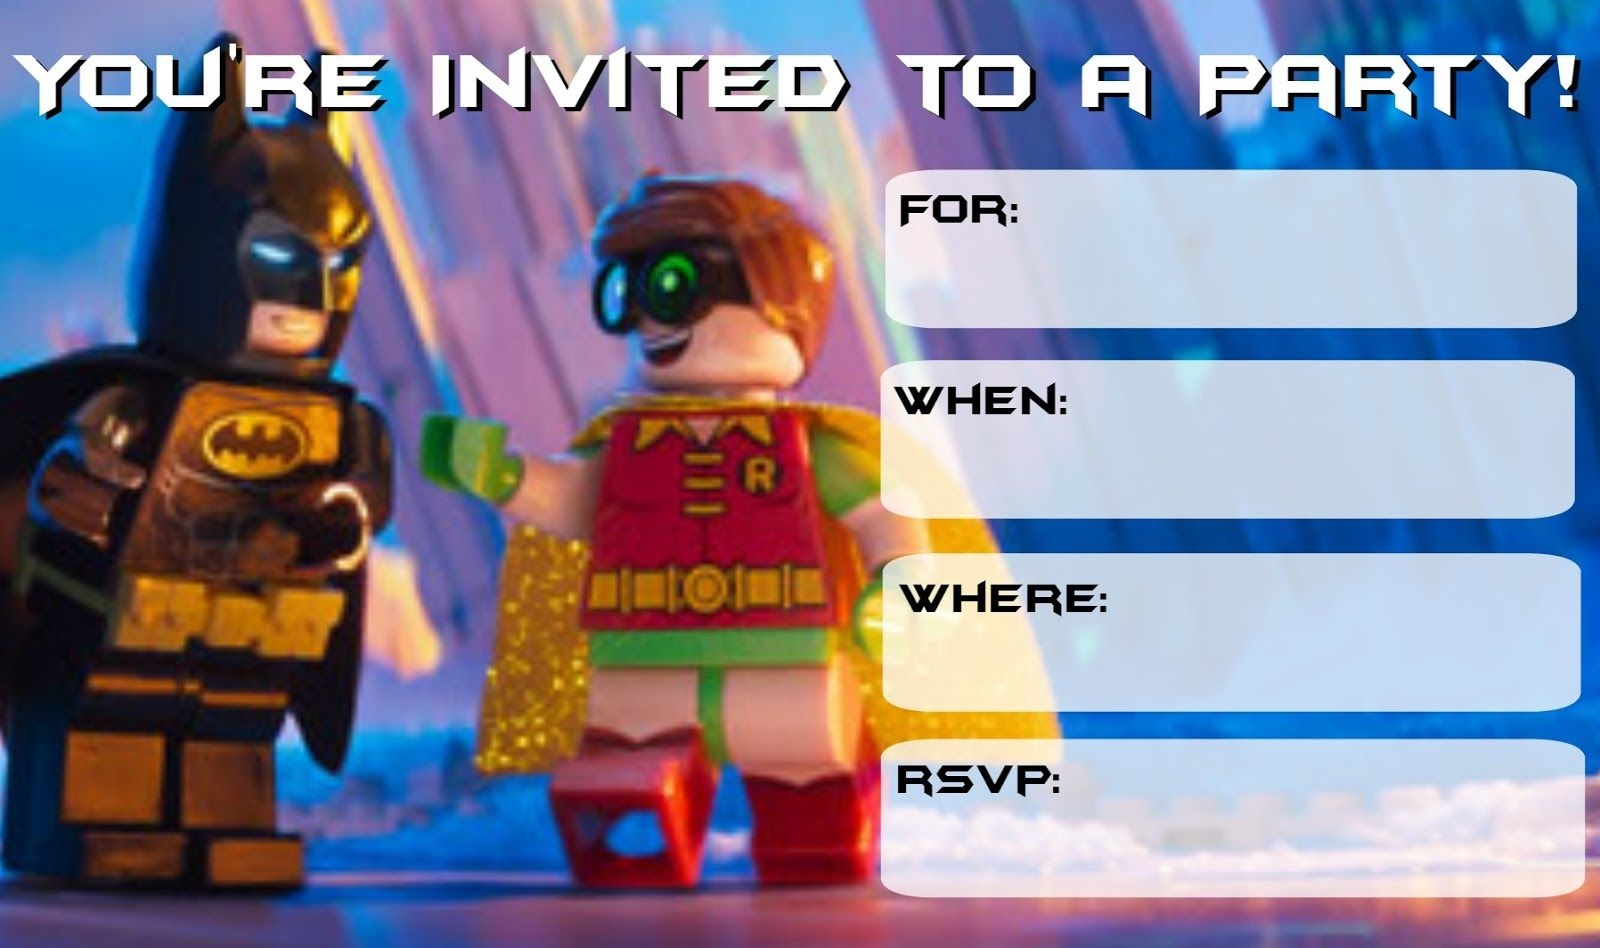 More Lego Batman Party Invitations | Drew's Birthday | Lego Batman - Lego Batman Party Invitations Free Printable